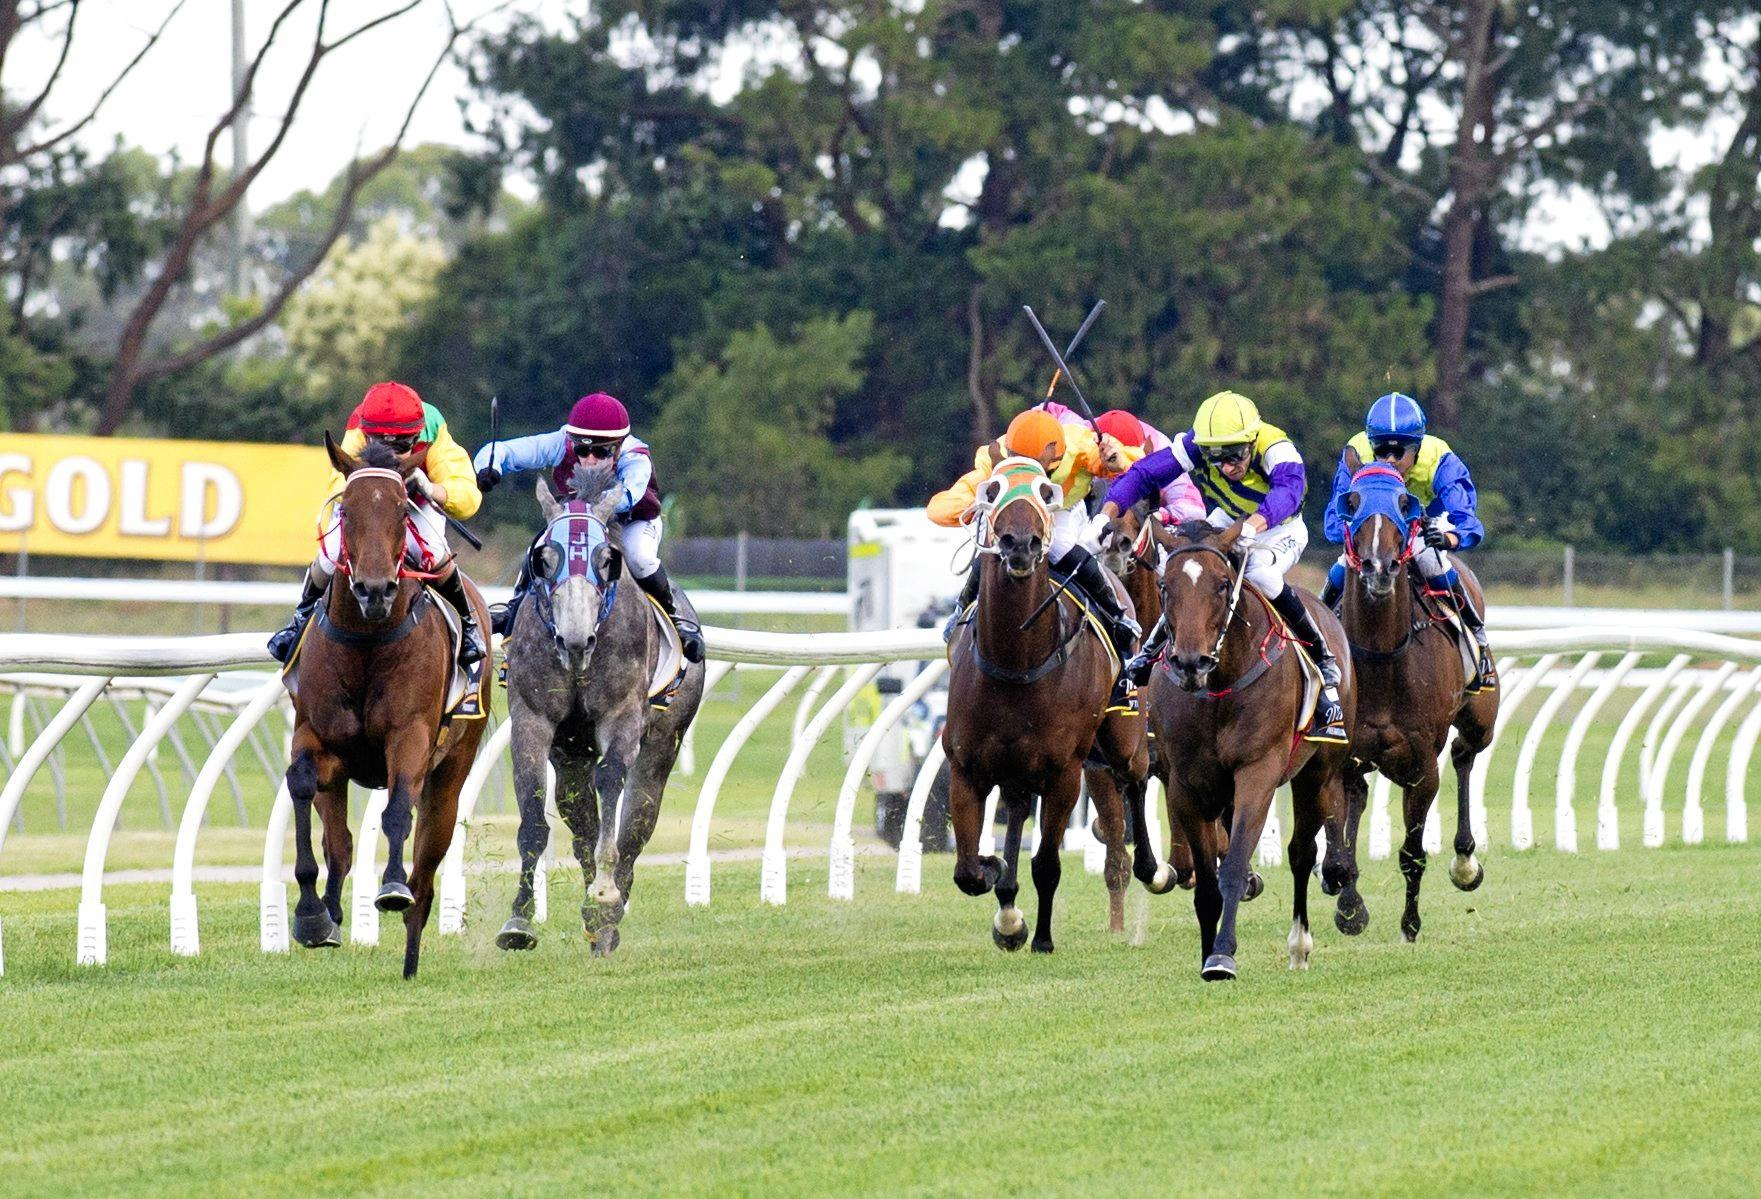 A change in race field size policy is set to benefit Queensland racing industry participants.